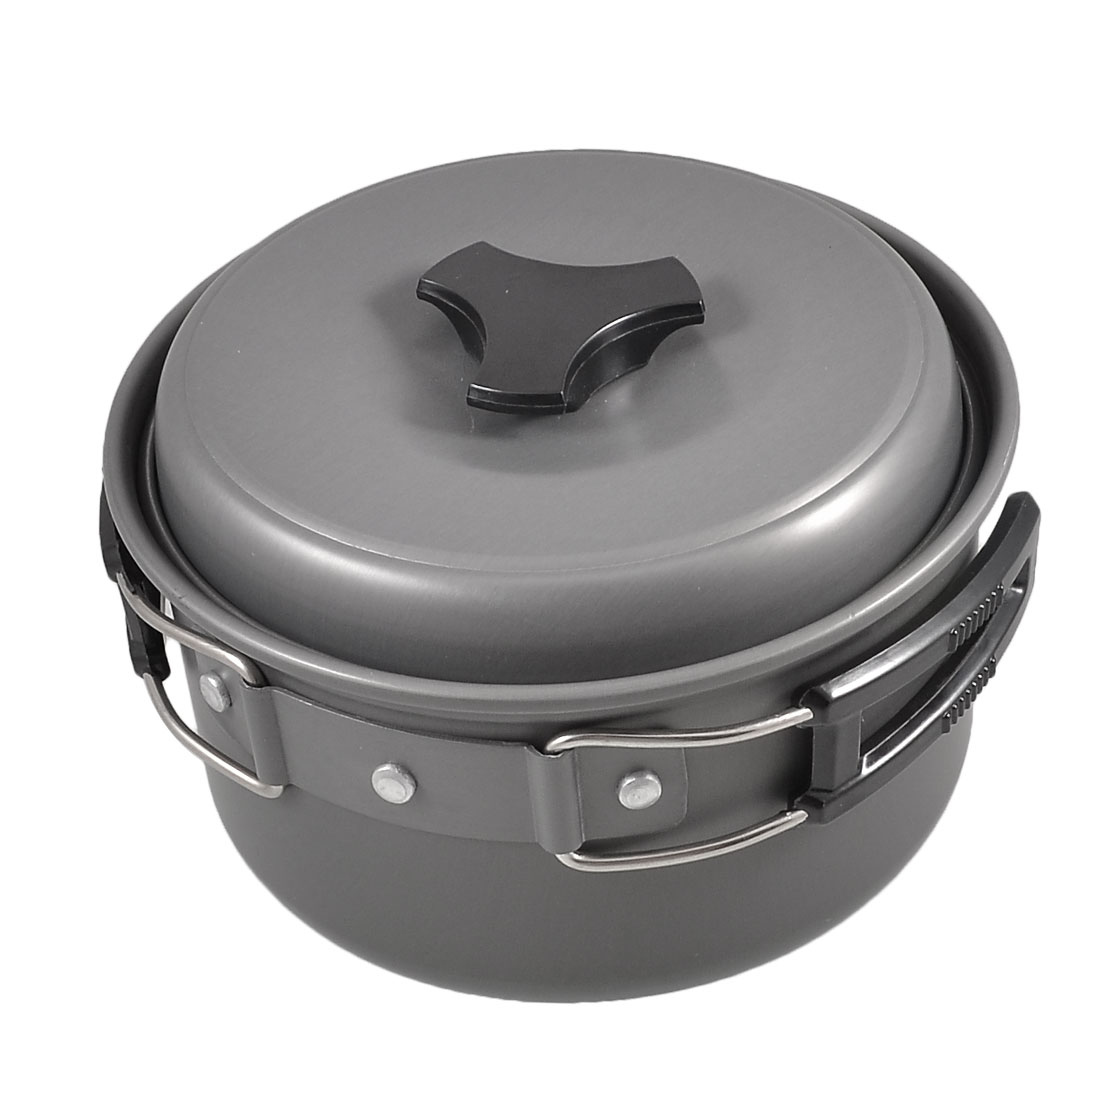 Foldable Plastic Coated Metal Handle Soup Porridge Cooking Pot 986ml